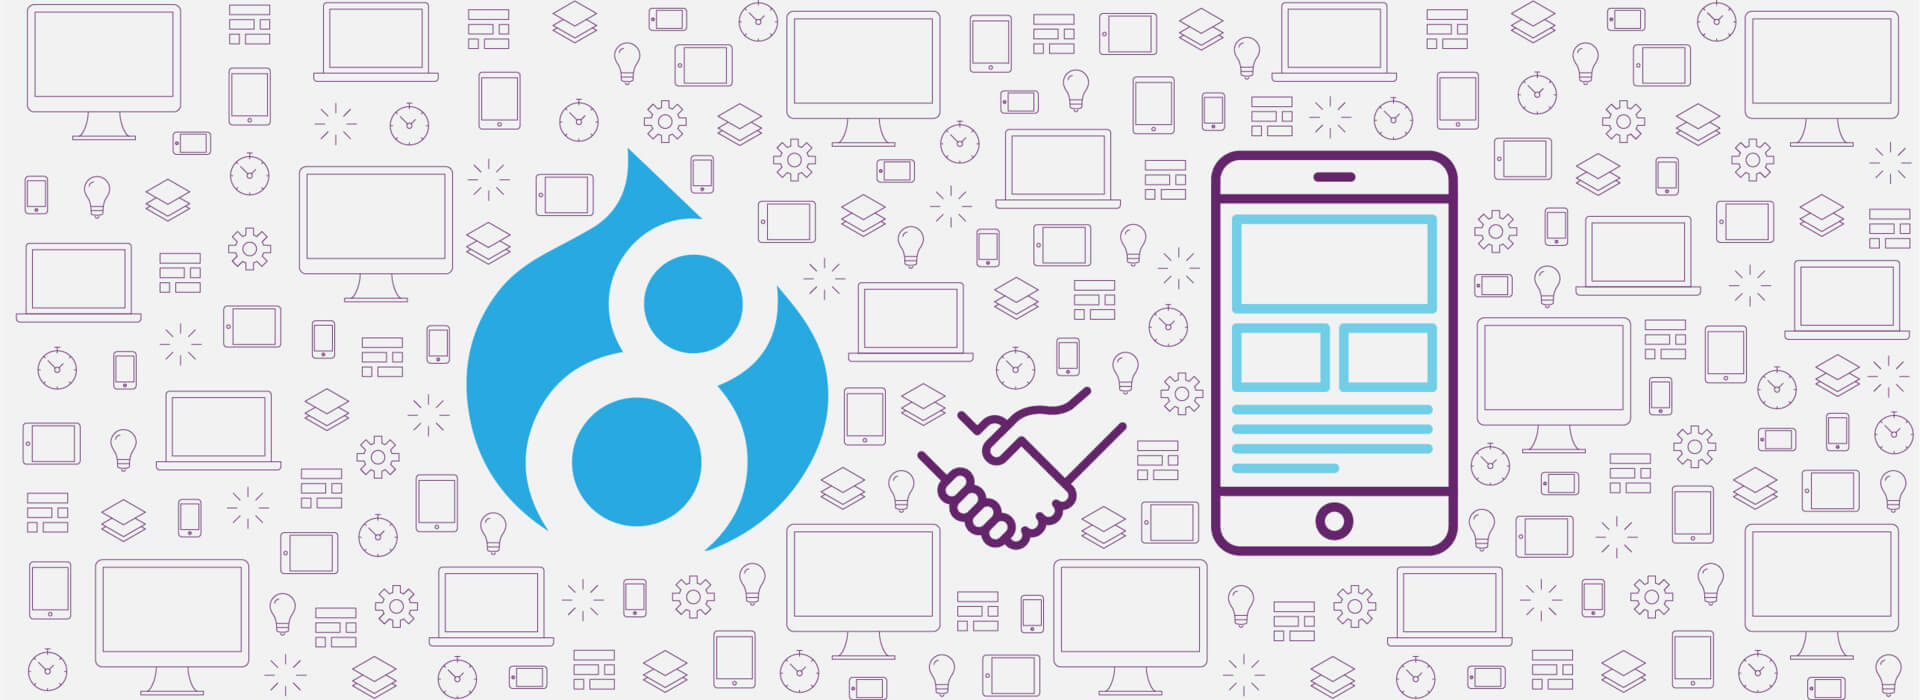 Drupal 8 for Mobile-Friendly Site